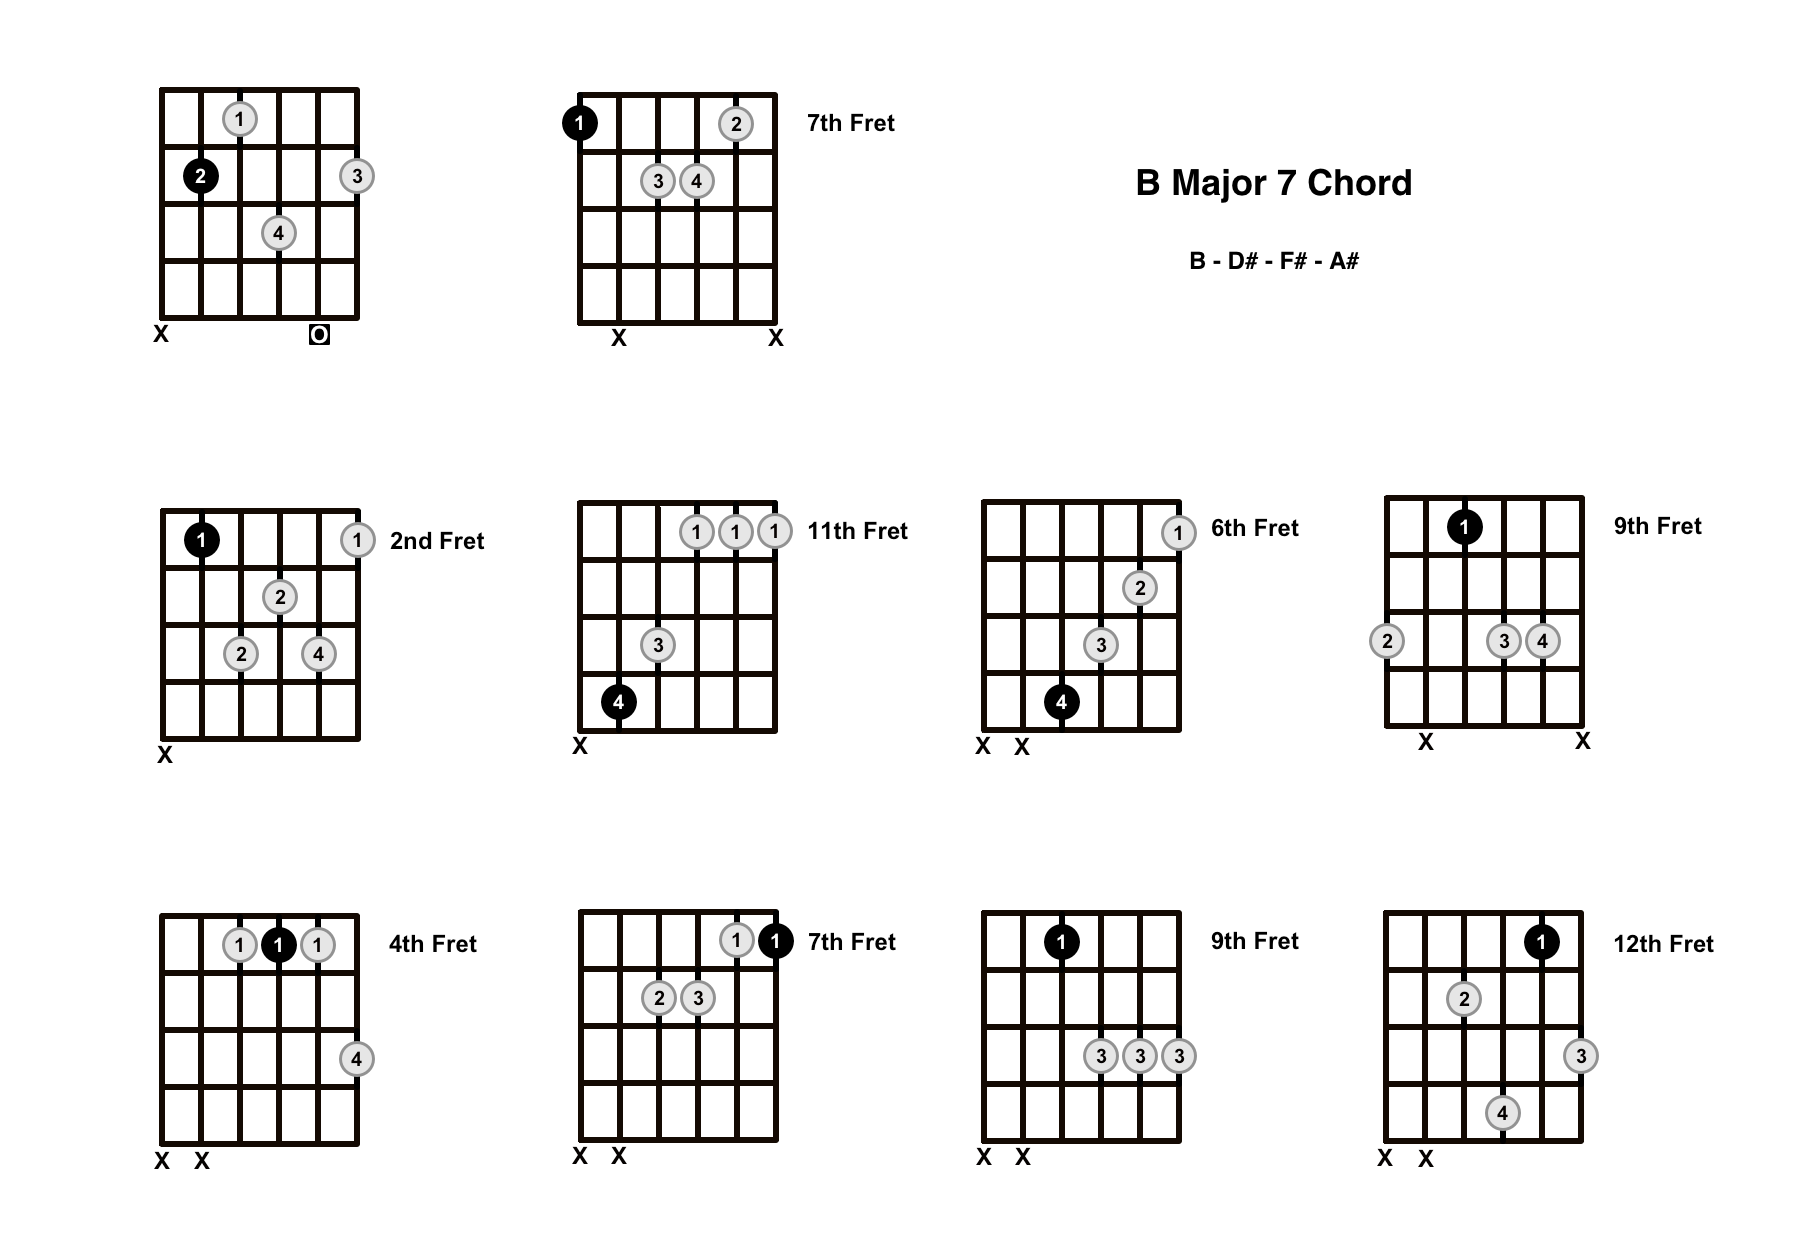 B Major 7 Chord On The Guitar (B Maj 7) – Diagrams, Finger Positions and Theory